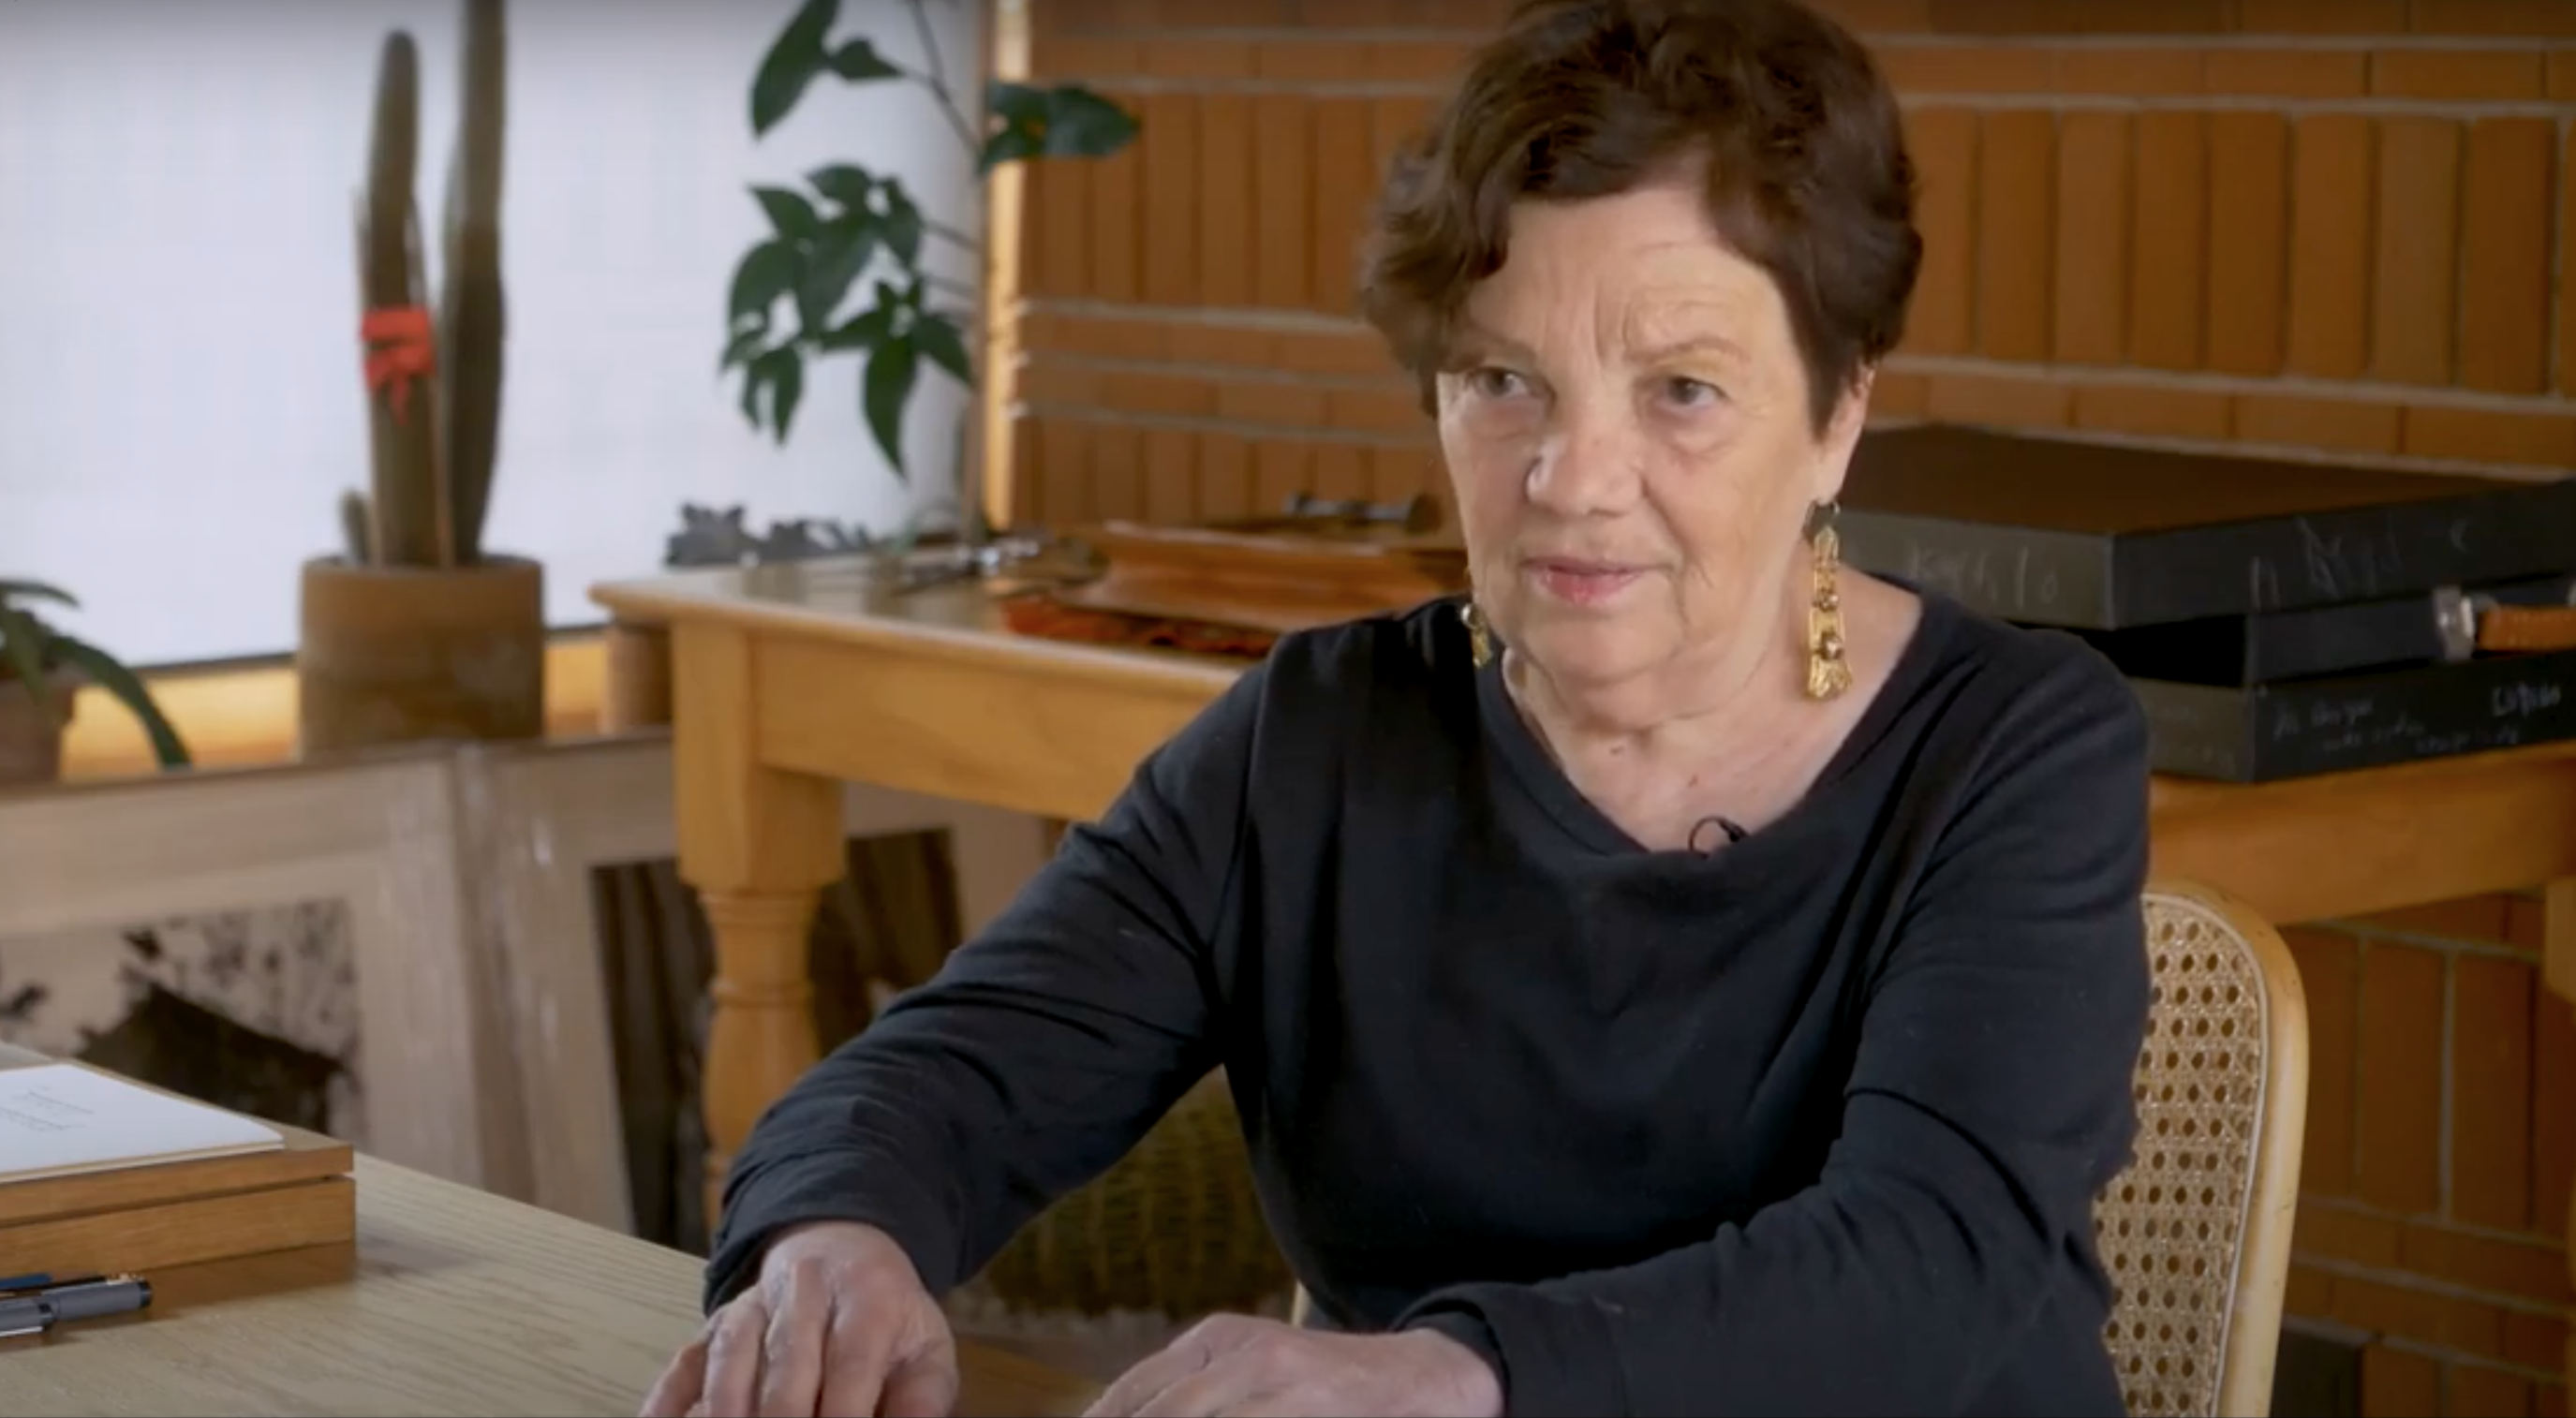 Still photograph from a video about the artist shows an older woman with light skin and dark hair sitting at a table.